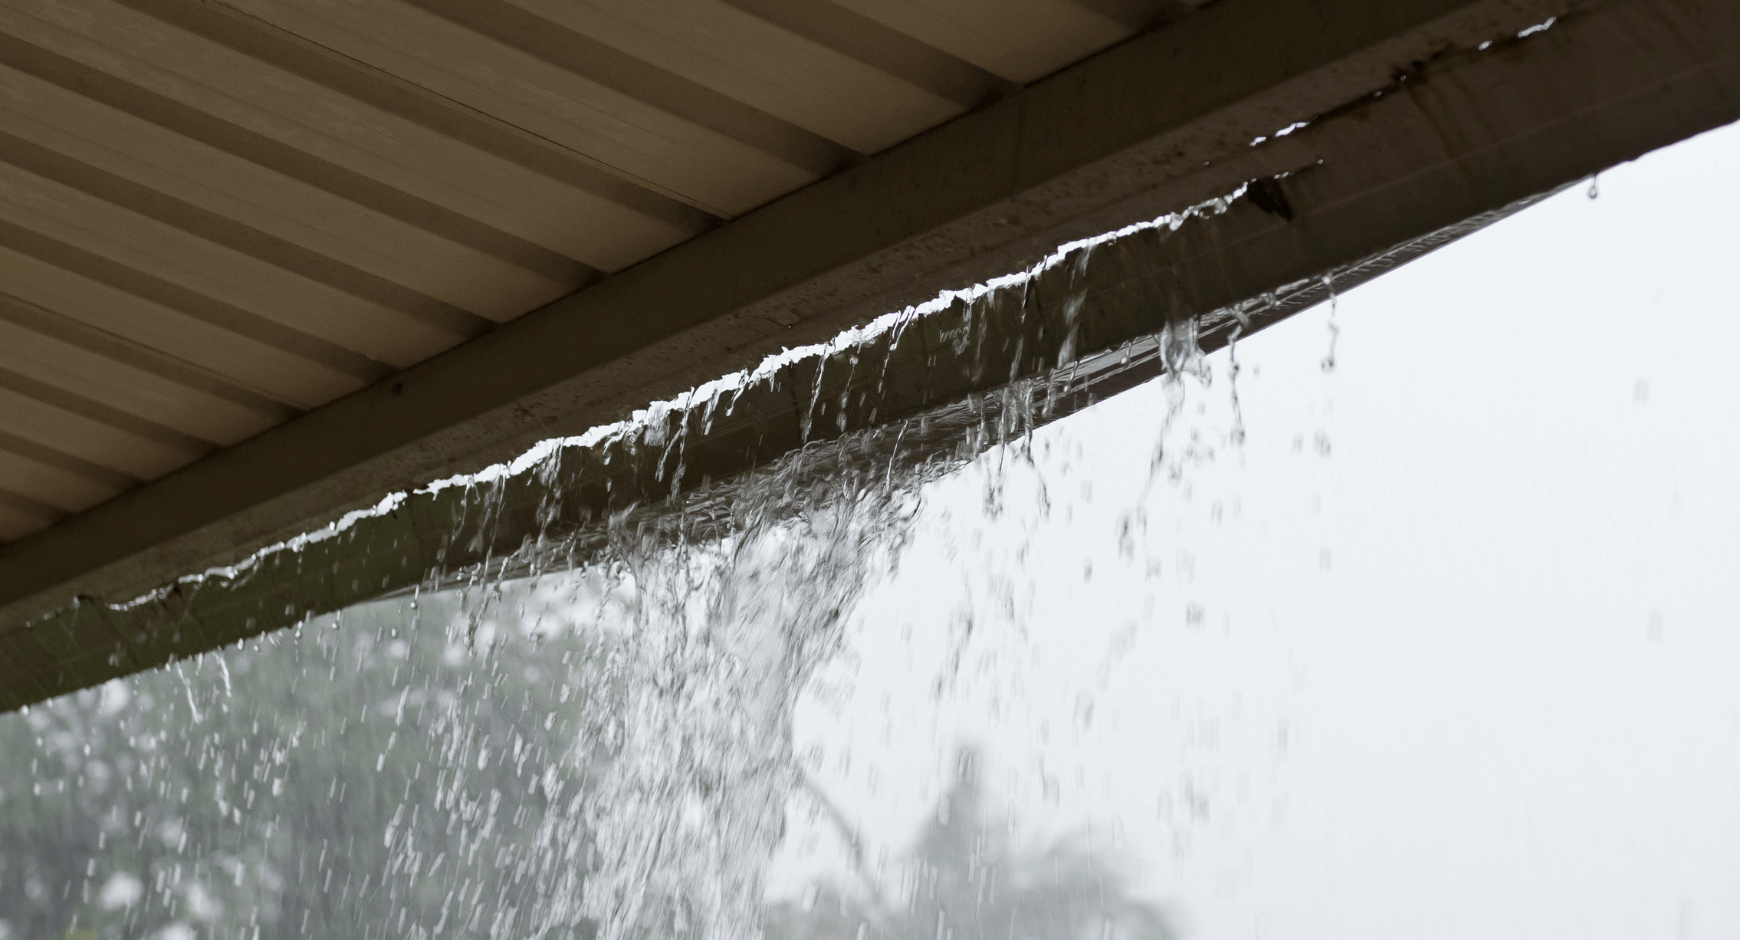 Image of a leaking gutter